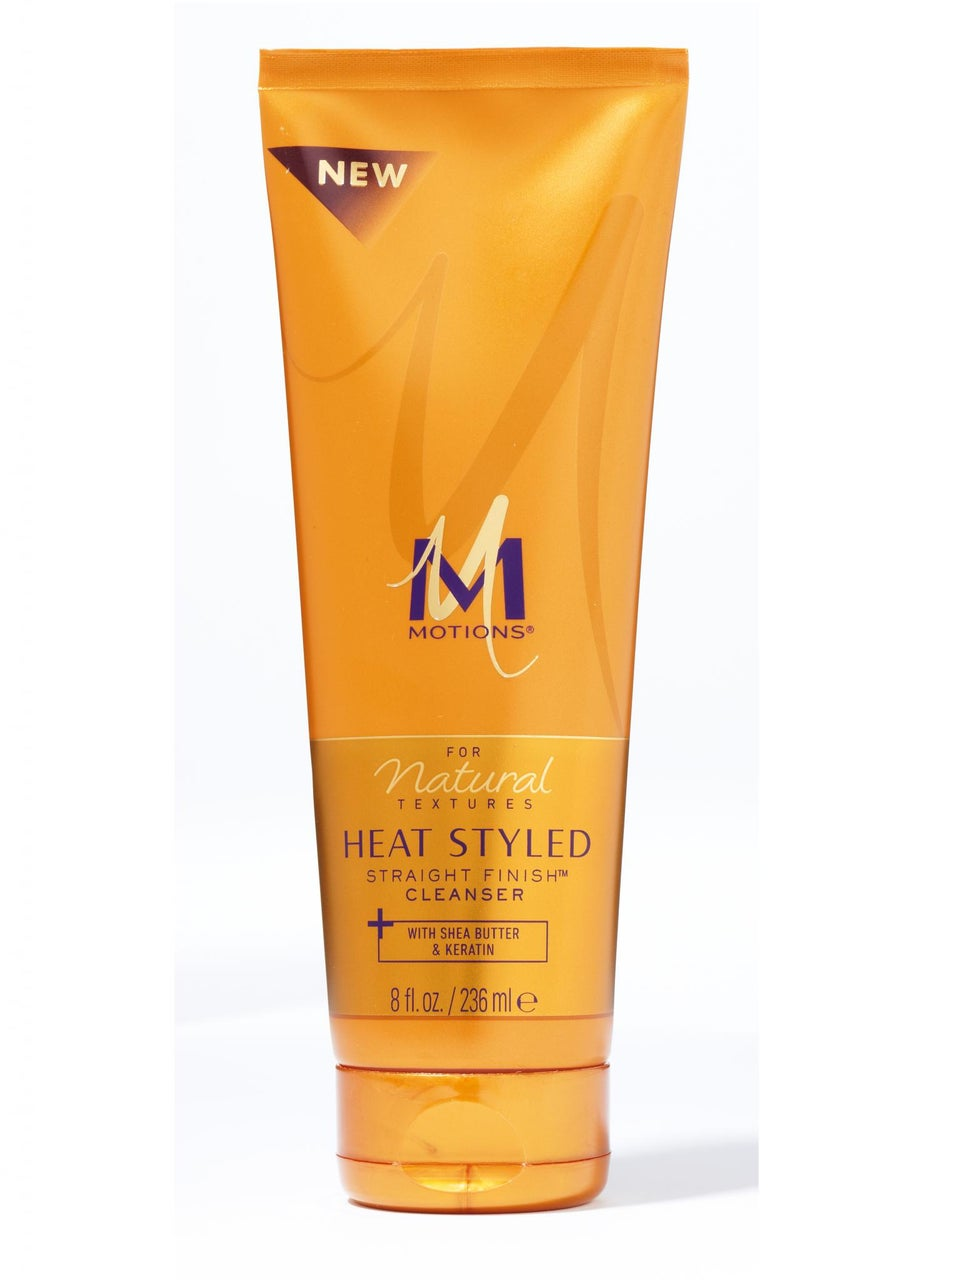 Product Junkies: Motions Heat Styled Straight Finish Cleanser